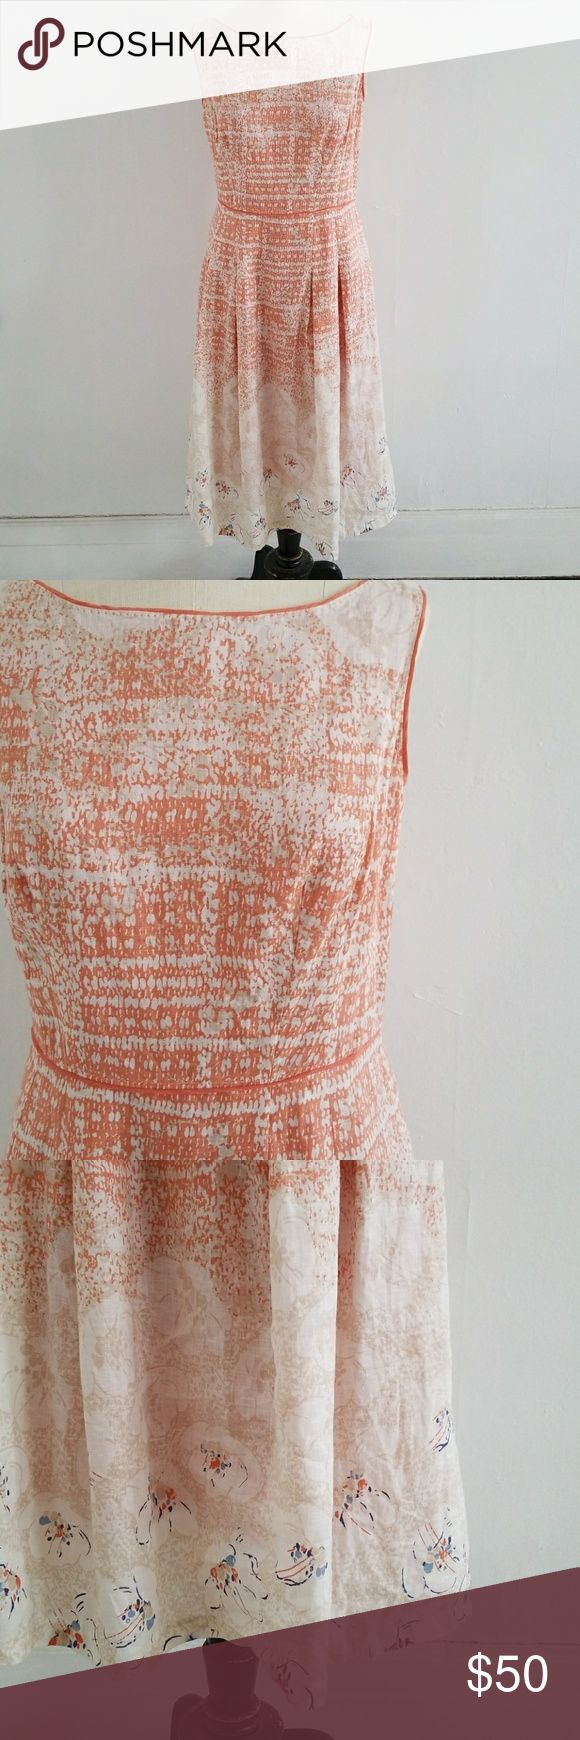 "ELIE TAHARI linen peach and floral sundress This beauty has me dreaming of warmer days!  Peach and cream abstract floral midi dress.  Fitted bodice with pleated skirt.  Pullover with hidden side zipper and hook and eye closure.  100% linen.  In EUC, no flaws.  19"" armpit to armpit  14.5"" flat waist 21.5"" flat Hips 42.5"" total length Elie Tahari Dresses Midi"